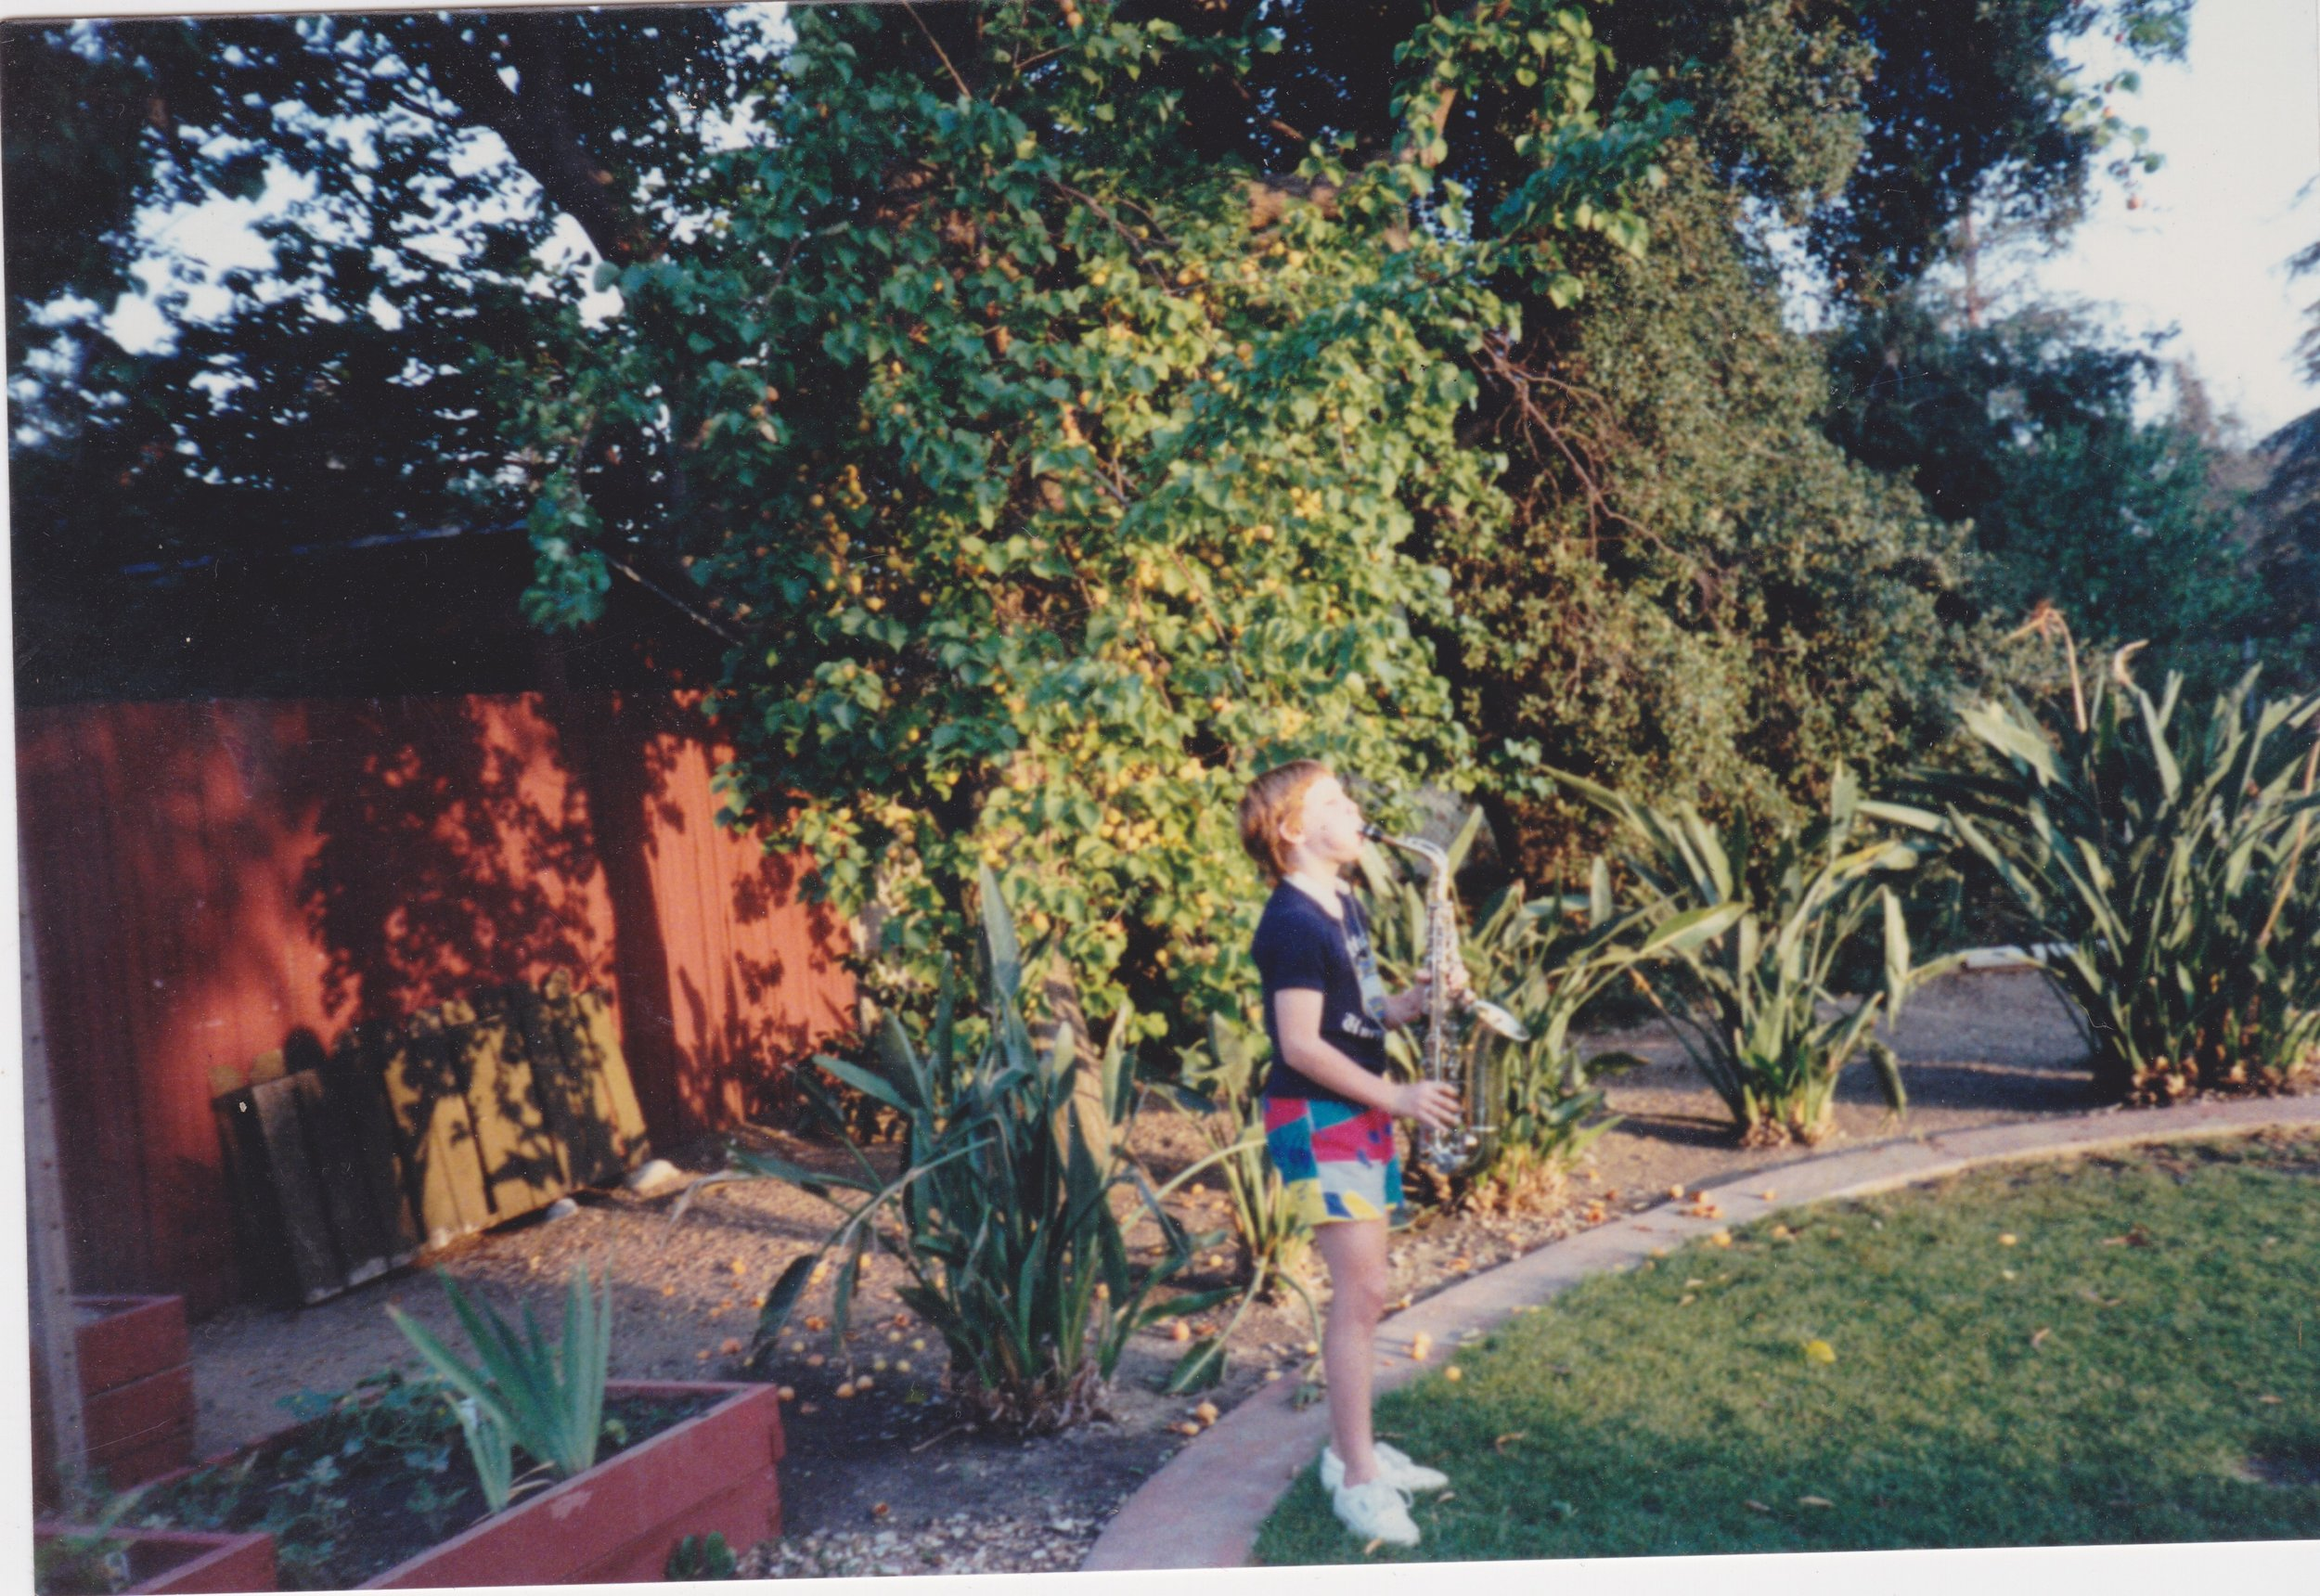 """Circa 1987, yours truly practicing the saxophone. This backyard stage would later be used as the set for my first talk show, """"Kelly"""",which ran for two seasons in 1989 - 1990.:)"""